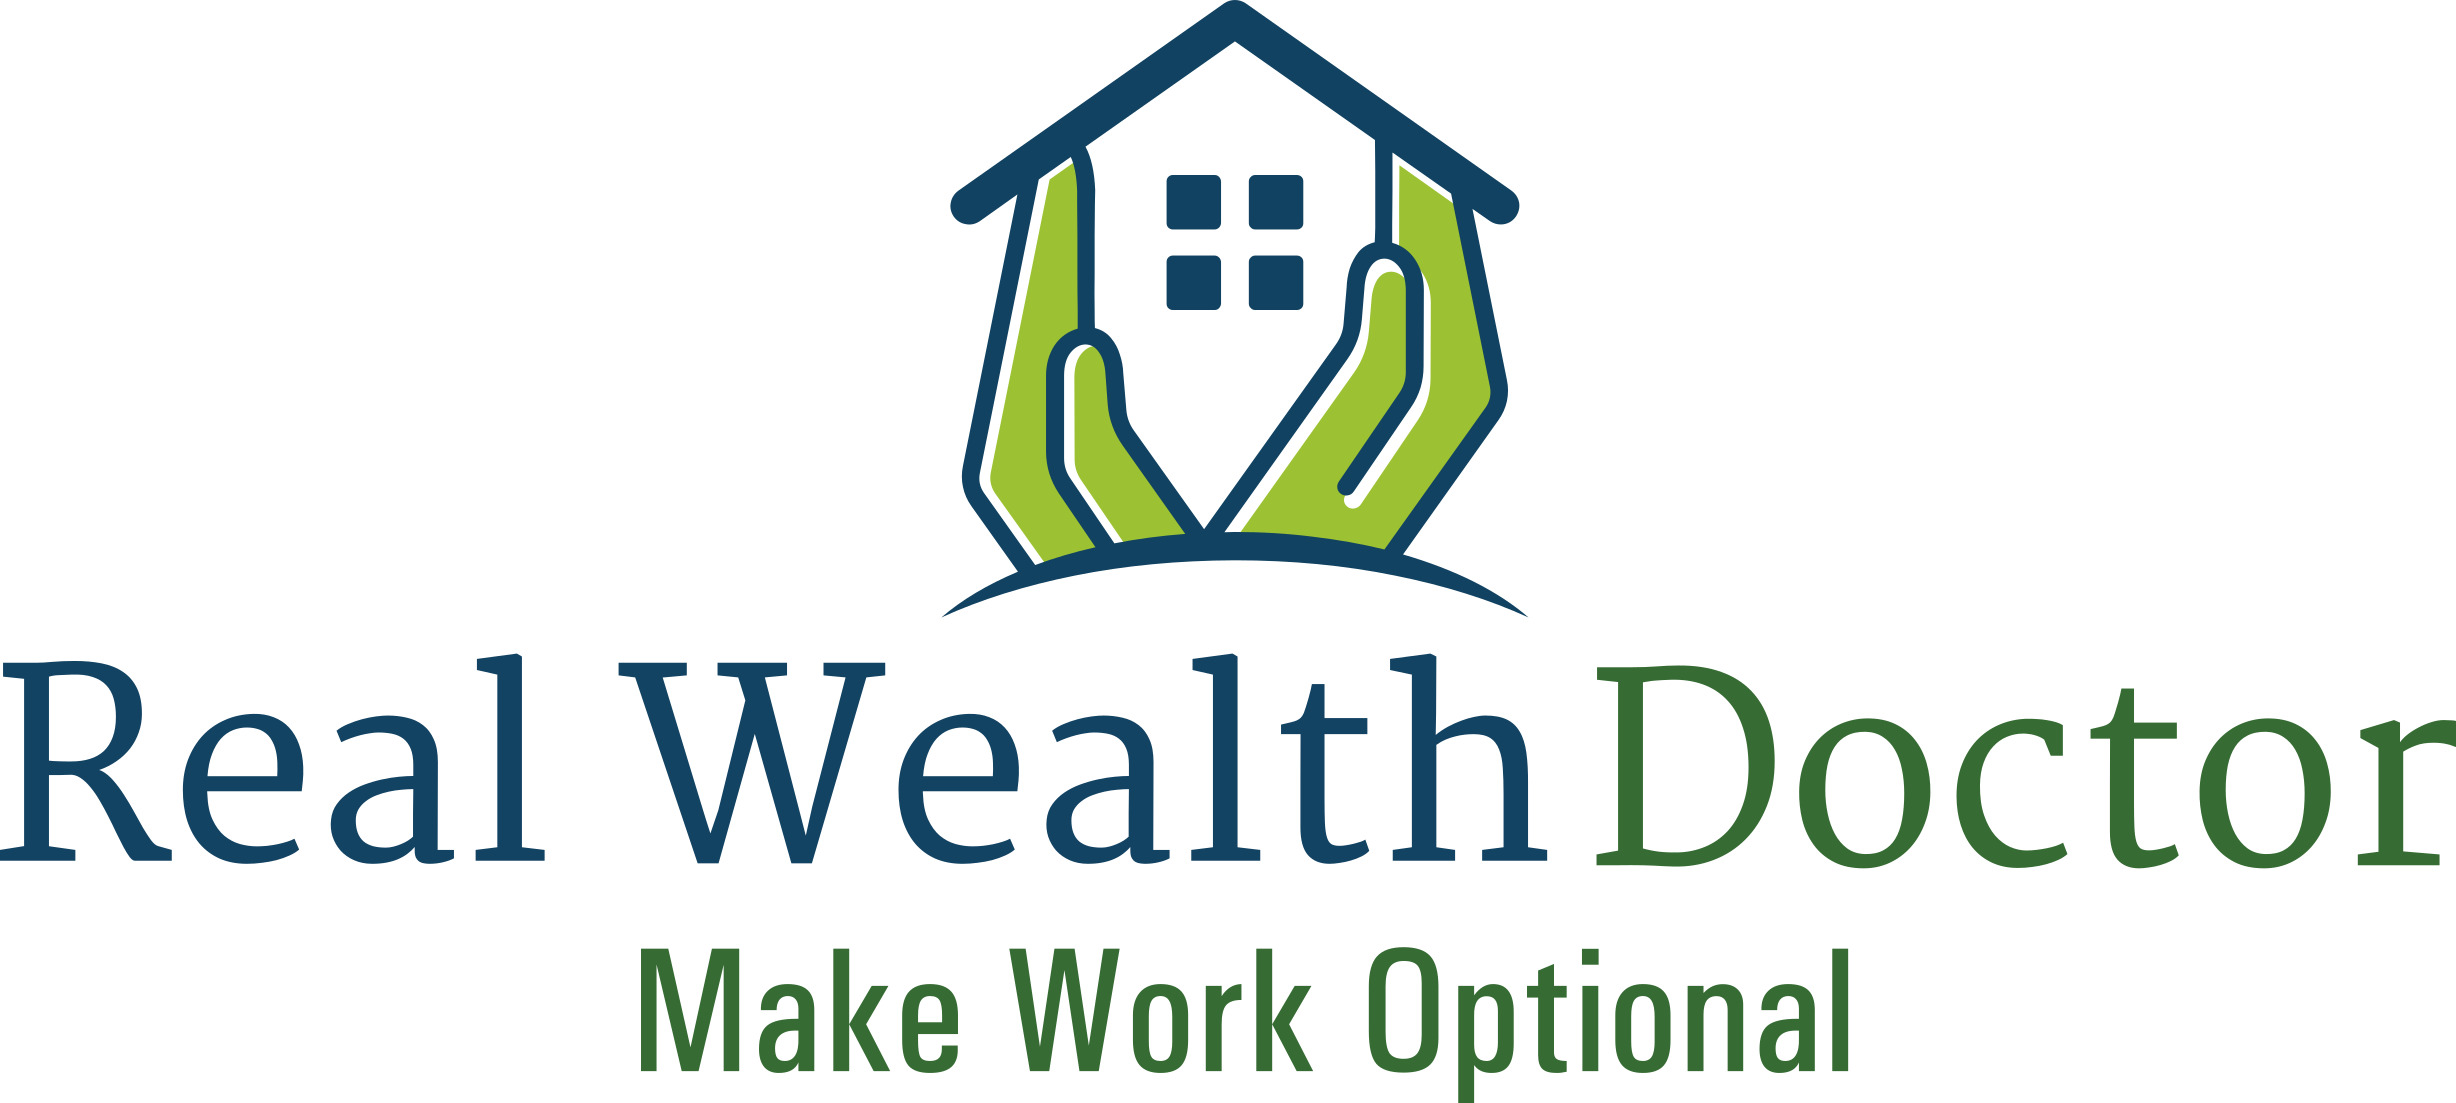 Real Wealth Doctor